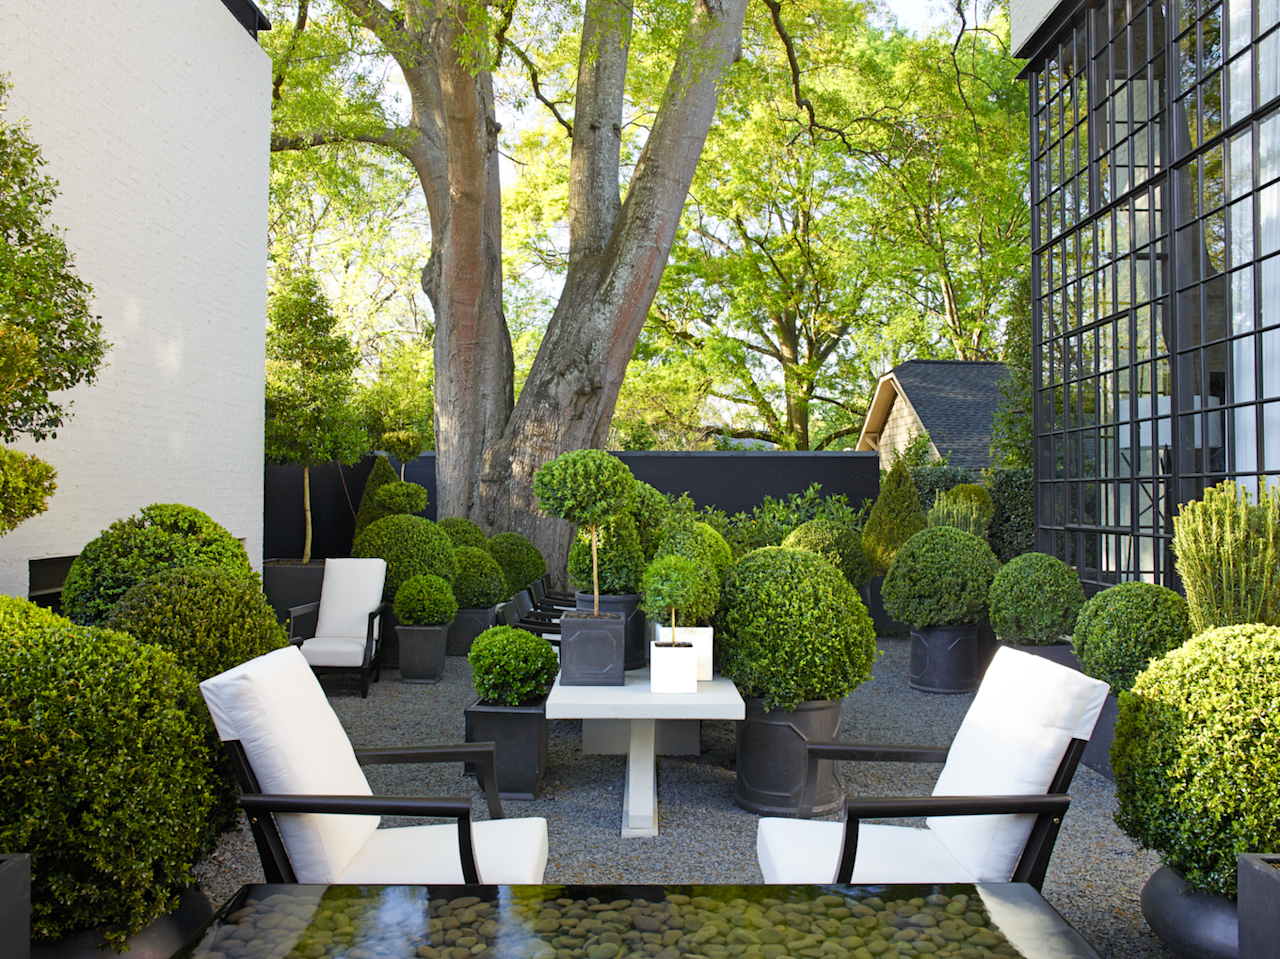 "<p>Nothing freshens up the facade of a house like emerald-green shrubbery. Thanks to their versatility, boxwoods are a perennial favorite among traditionalists and modernists alike. Long associated with <a href=""https://www.veranda.com/outdoor-garden/g1134/beautiful-french-gardens/"" target=""_blank"">French gardens</a> with clipped hedges demarcating shapely parterres, the small-leafed bush is an obvious choice for adding formality to any house facade. Yet its sculptural nature also lends itself quite nicely to minimalist settings. </p><p>Beyond just their style, boxwoods serve many functions in landscaping, from framing an entry and <a href=""https://www.veranda.com/outdoor-garden/g30914247/best-edging-plants/"" target=""_blank"">edging a walkway border</a> to surrounding an <a href=""https://www.veranda.com/outdoor-garden/g27405184/best-outdoor-fountains/"" target=""_blank"">outdoor fountain</a> to marking off a <a href=""https://www.veranda.com/outdoor-garden/g30696429/plants-for-shade/"" target=""_blank"">shady flower bed</a>. And, they require less maintenance than you might think: although they require watering and mulching, boxwoods do require regular tending, unless you opt for a super-sheared look. </p><p>Whether you're craving something formal or a little more low maintenance, let these beautiful boxwood landscape ideas inspire your next weekend project. Happy planting! </p>"